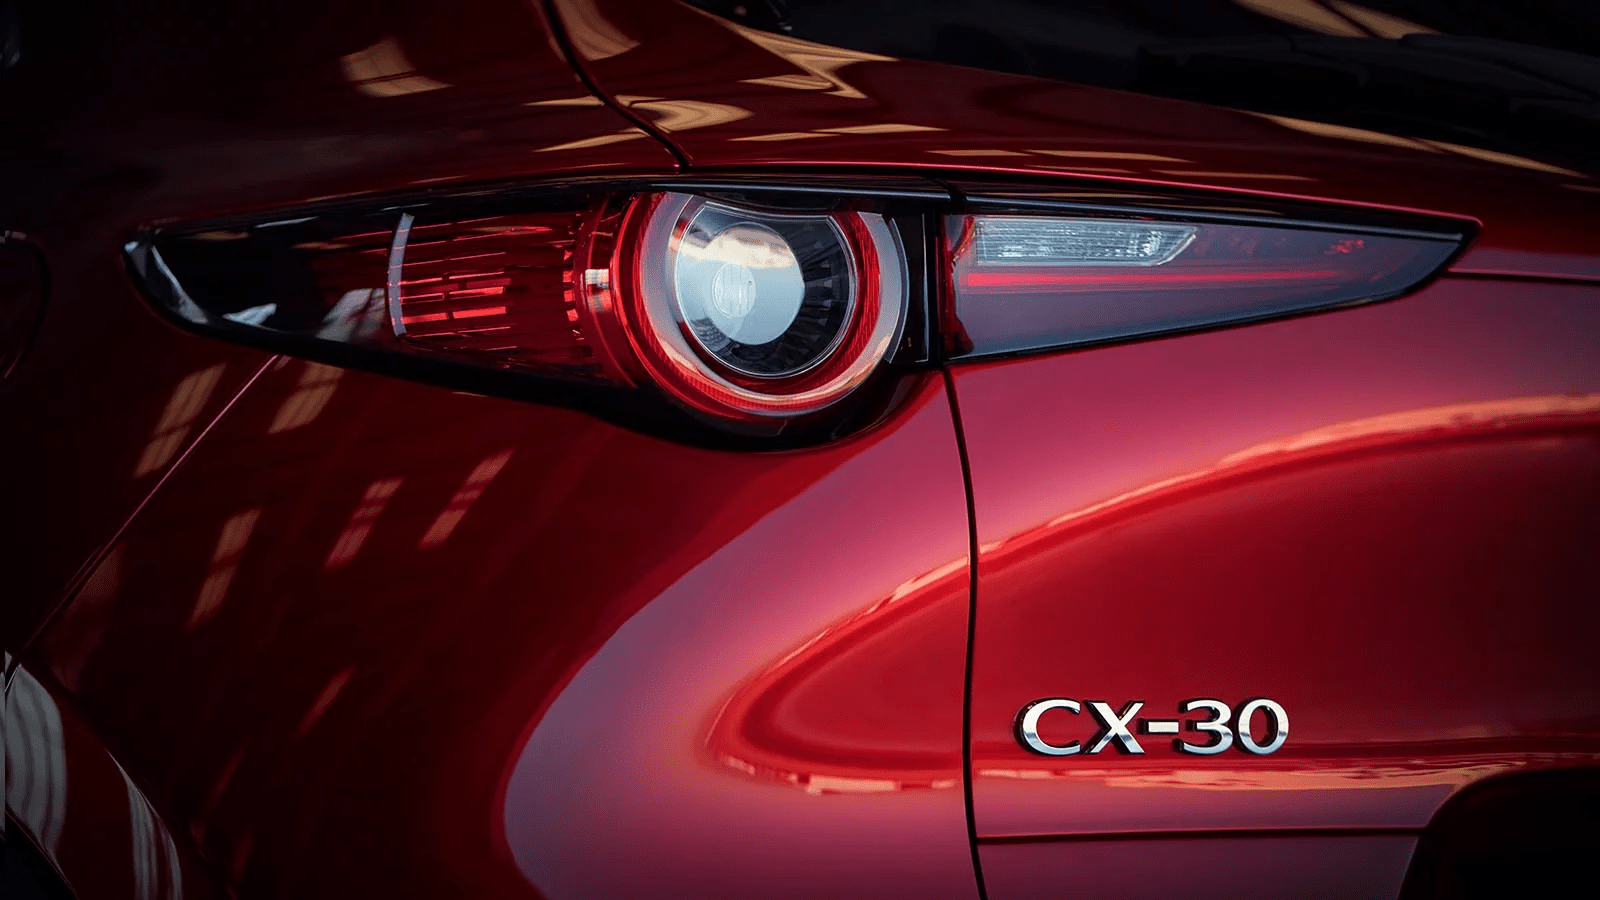 cx-30-gallery-03